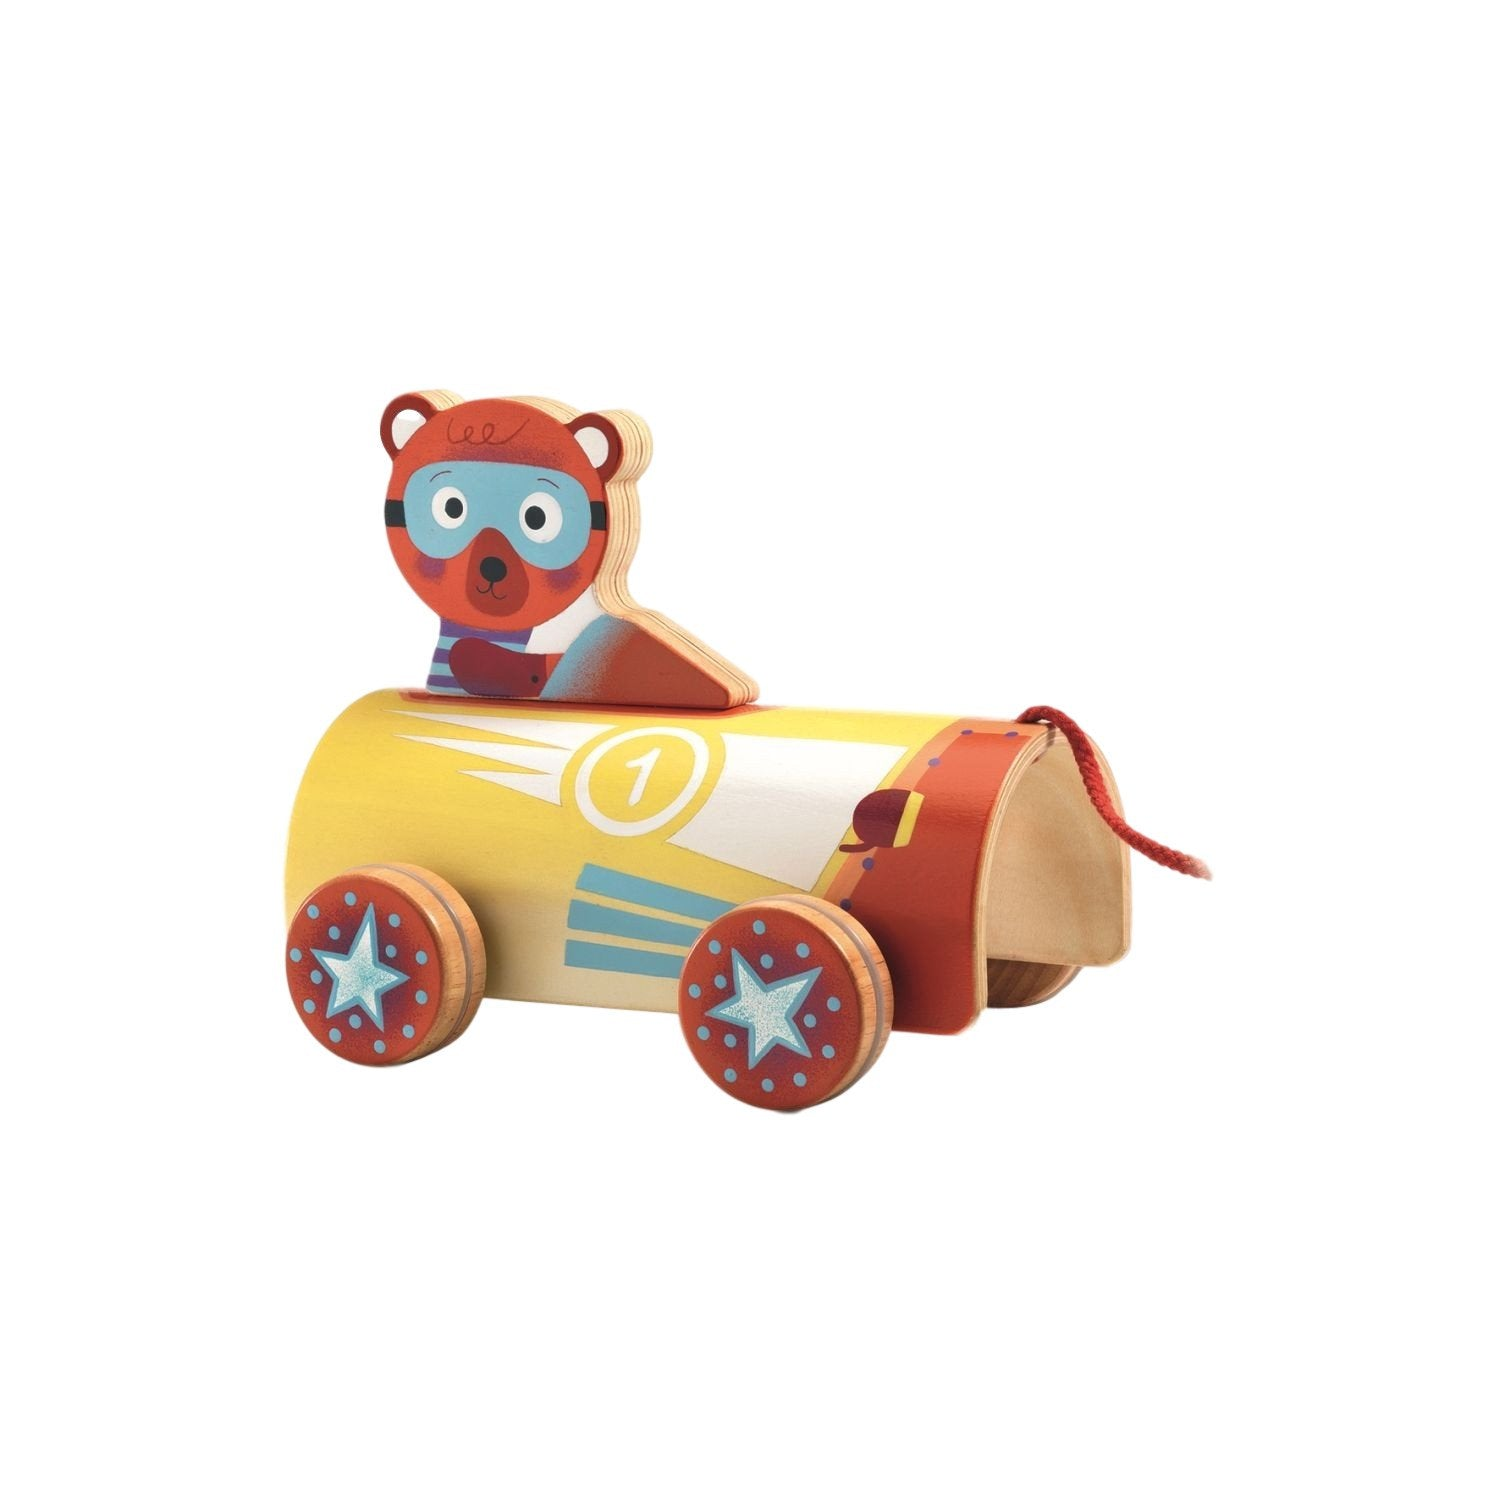 Djeco Pull Along Toy Roli Lewis Djeco Push and Pull Toys at Little Earth Nest Eco Shop